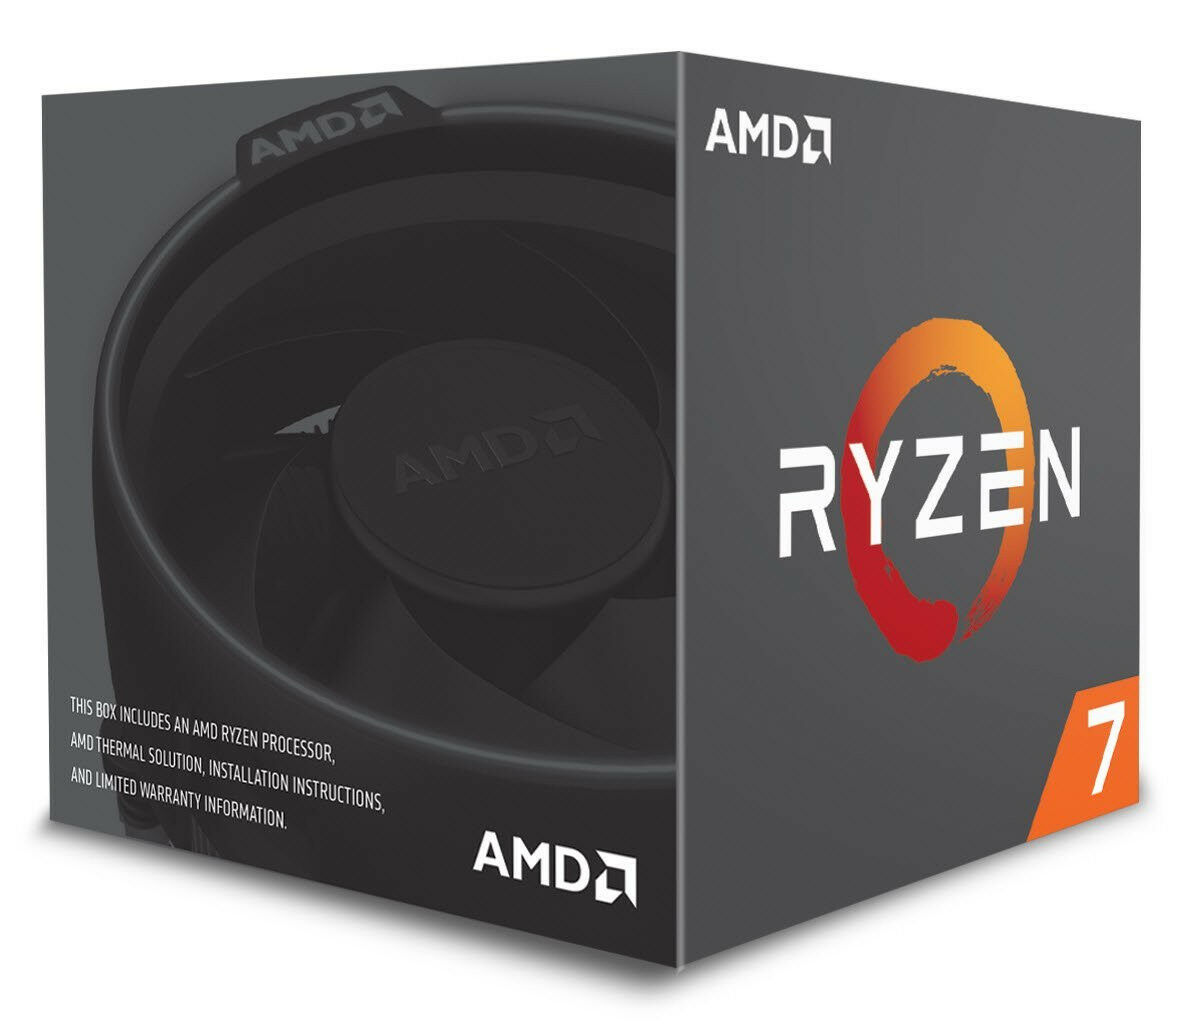 AMD Ryzen 7 2700 Processor with Wraith Spire LED Cooler (YD2700BBAFBOX) - New